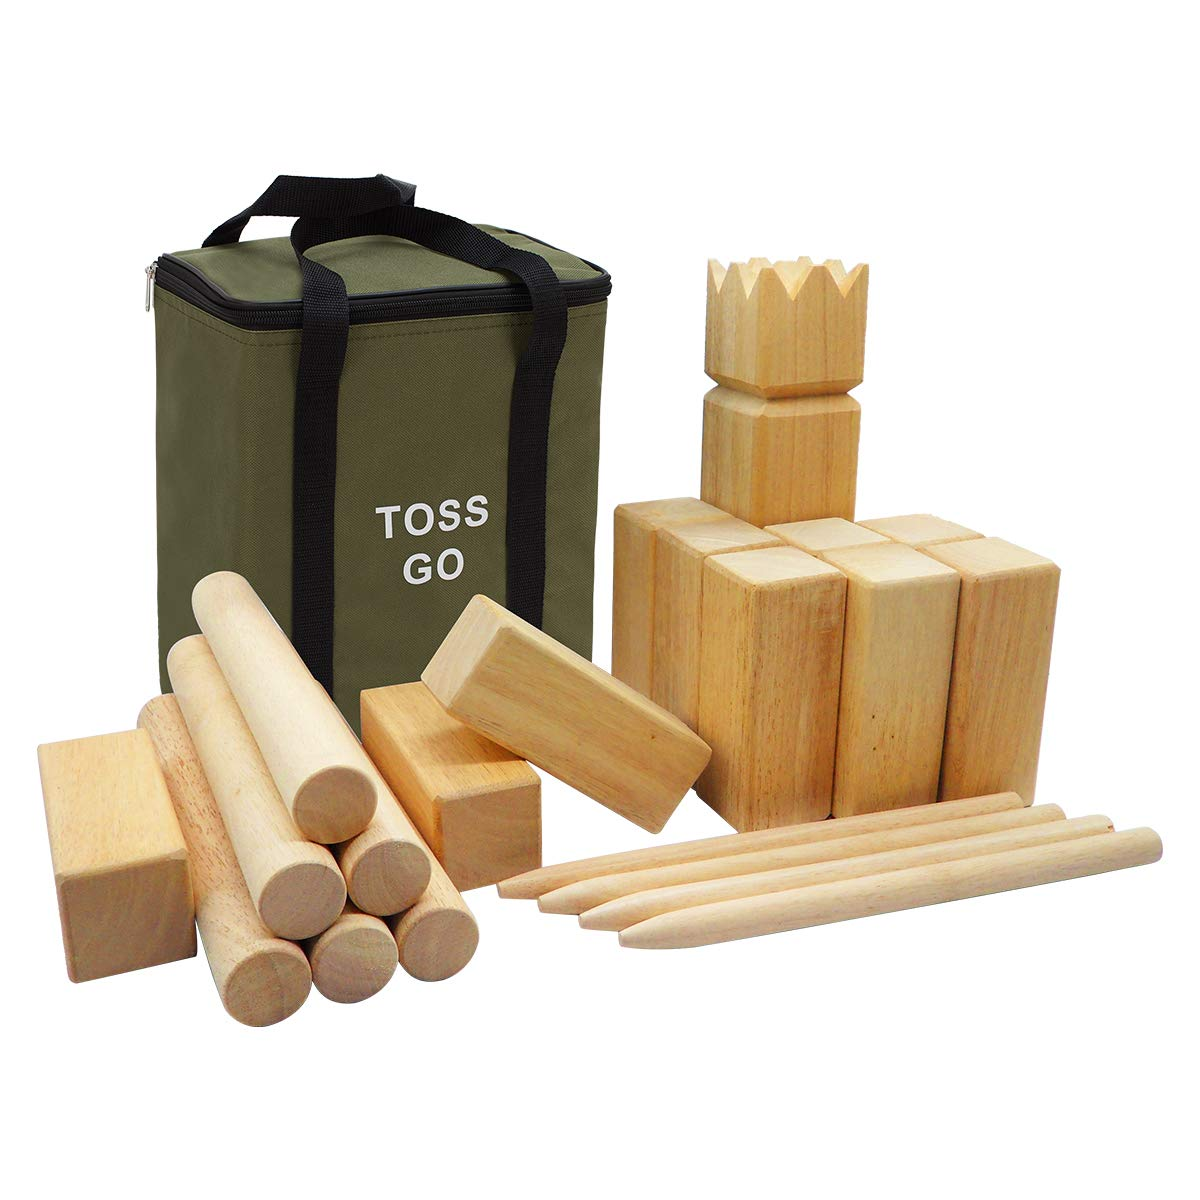 LAWN TIME Toss Go Rubberwood Kubb Game Set - Hardwood Kuub Yard Game - Outdoor Game with Carry Bag by LAWN TIME